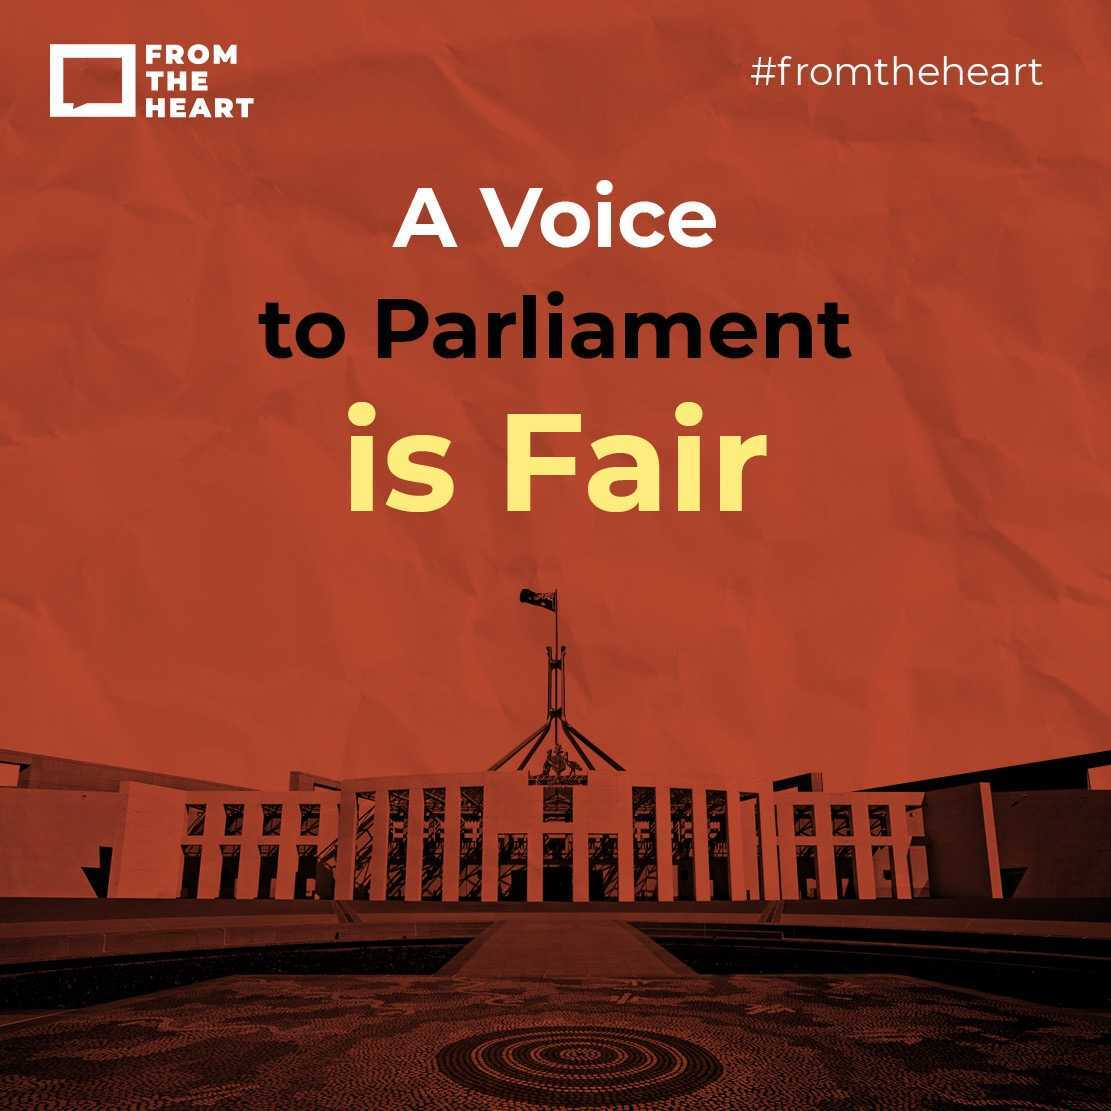 A Voice to Parliament is Fair Instagram template